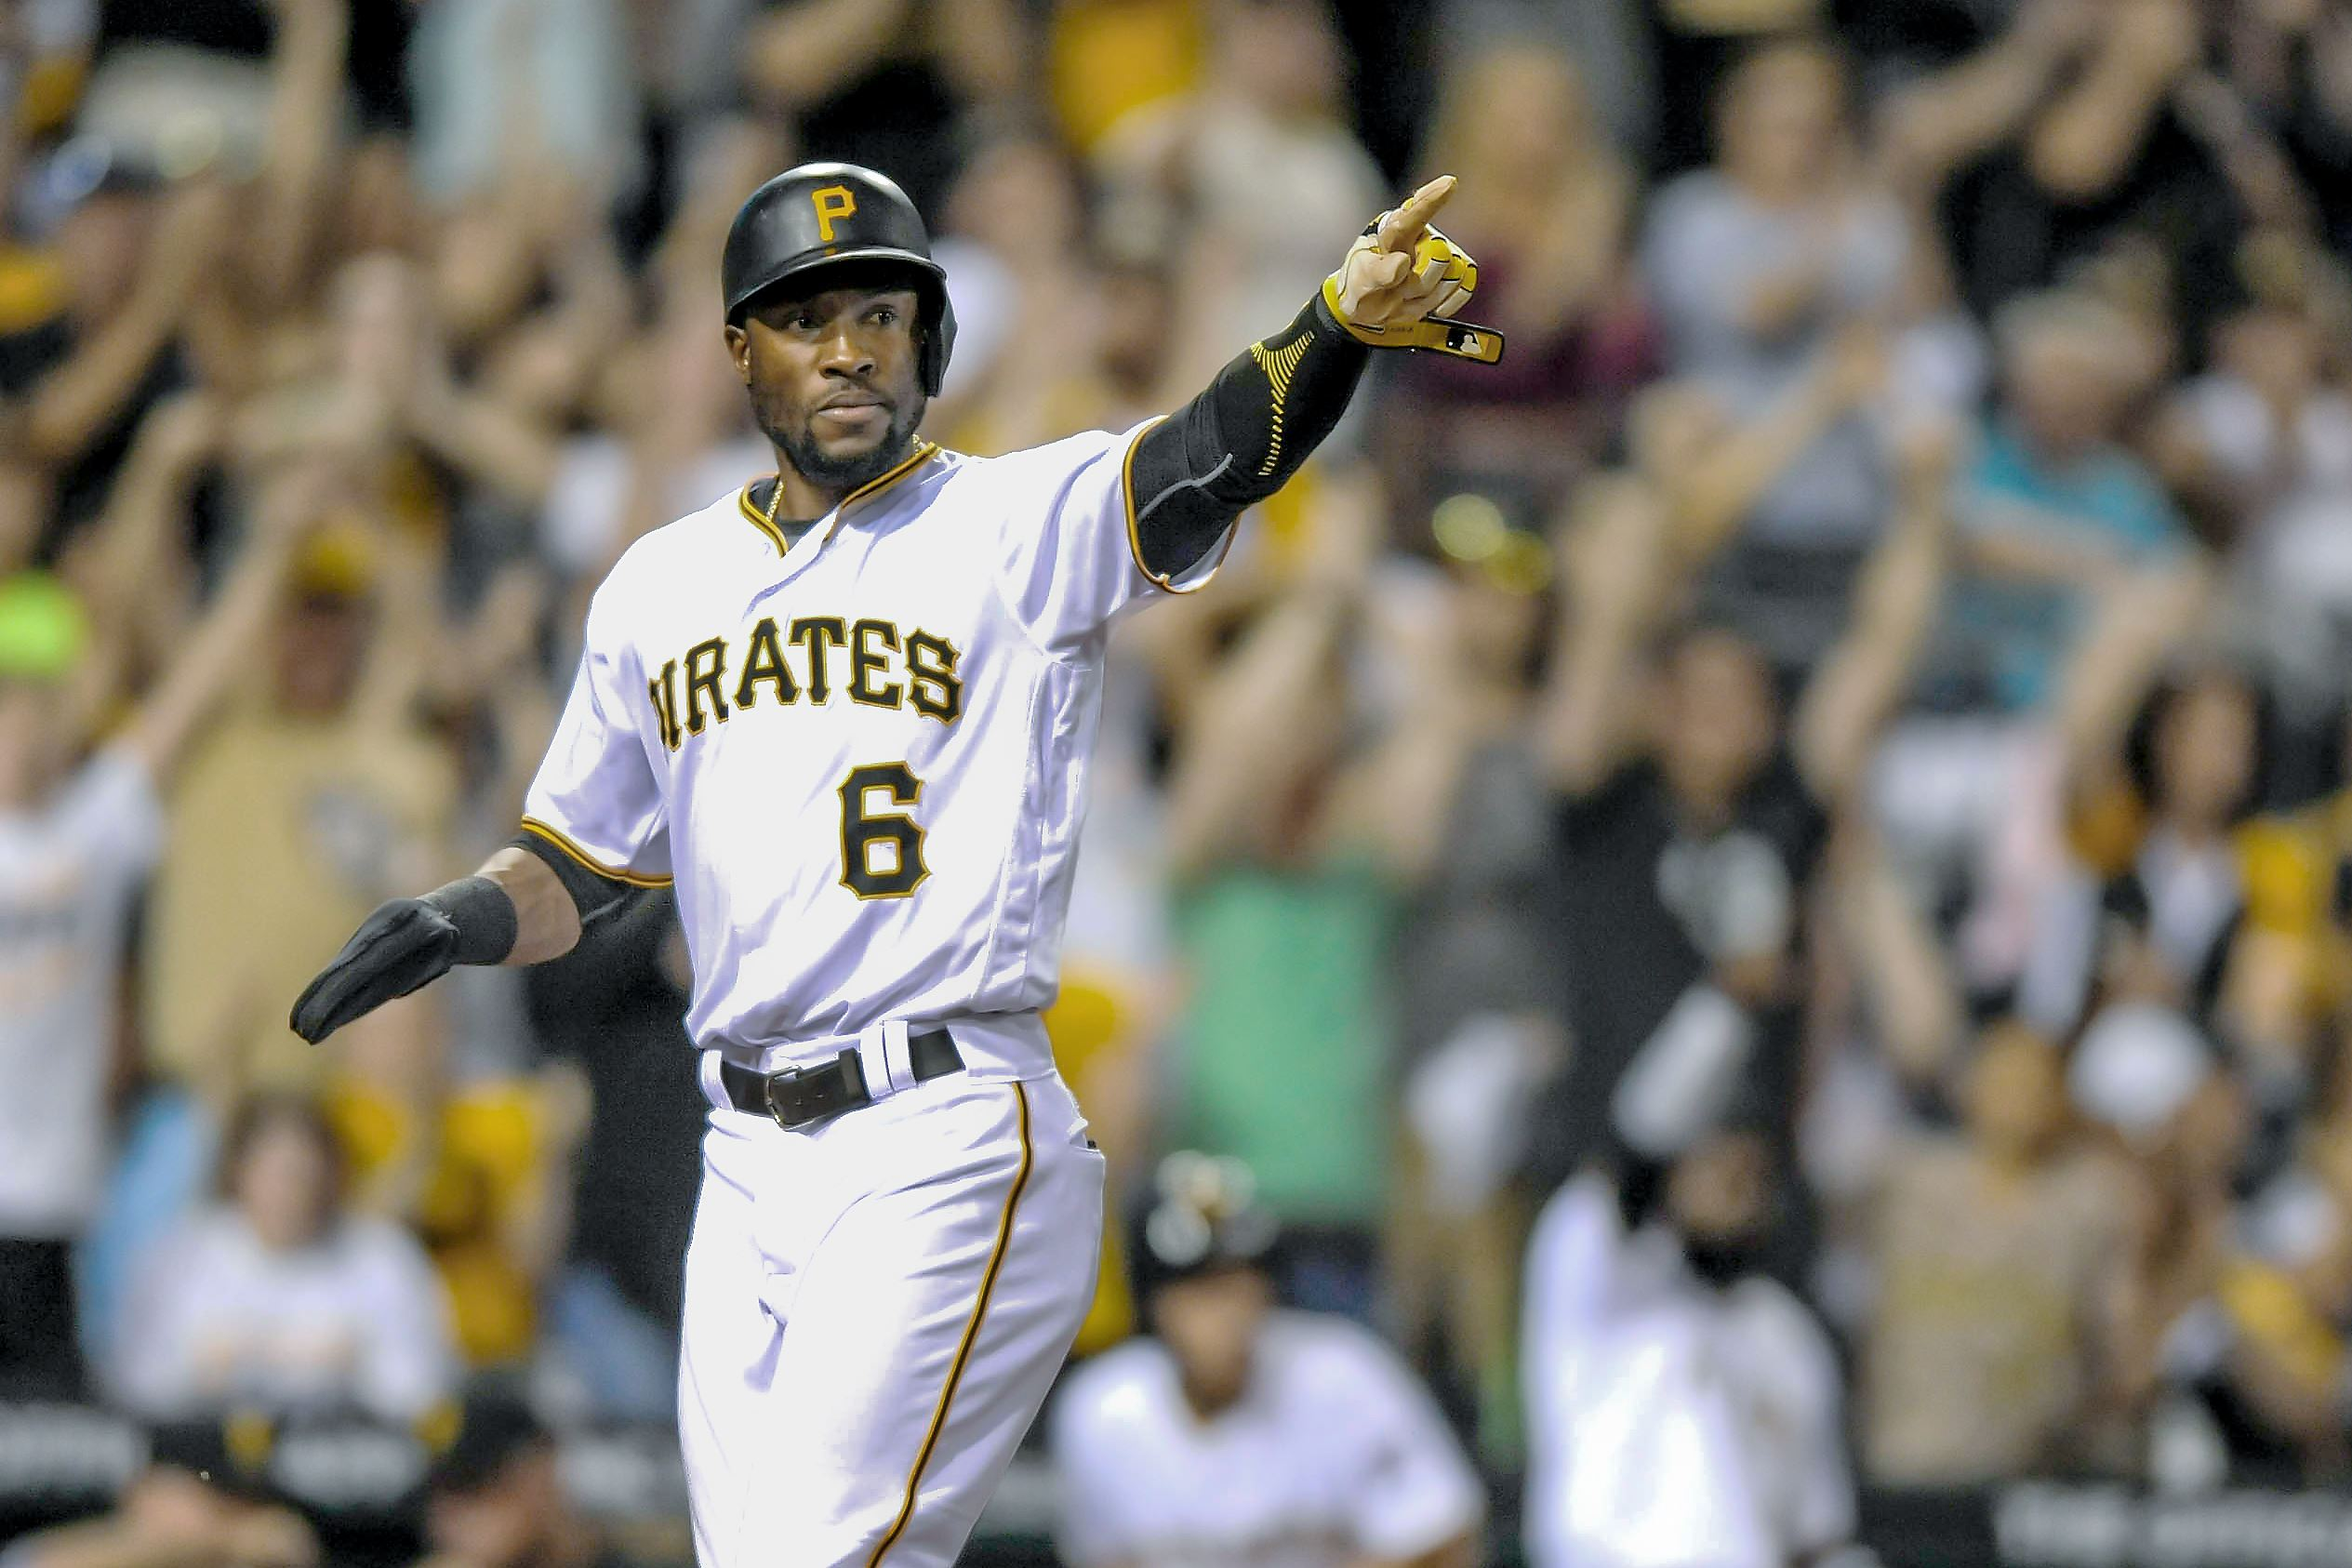 Pirates notebook: Stewart, Marte out of lineup in series finale against Mets